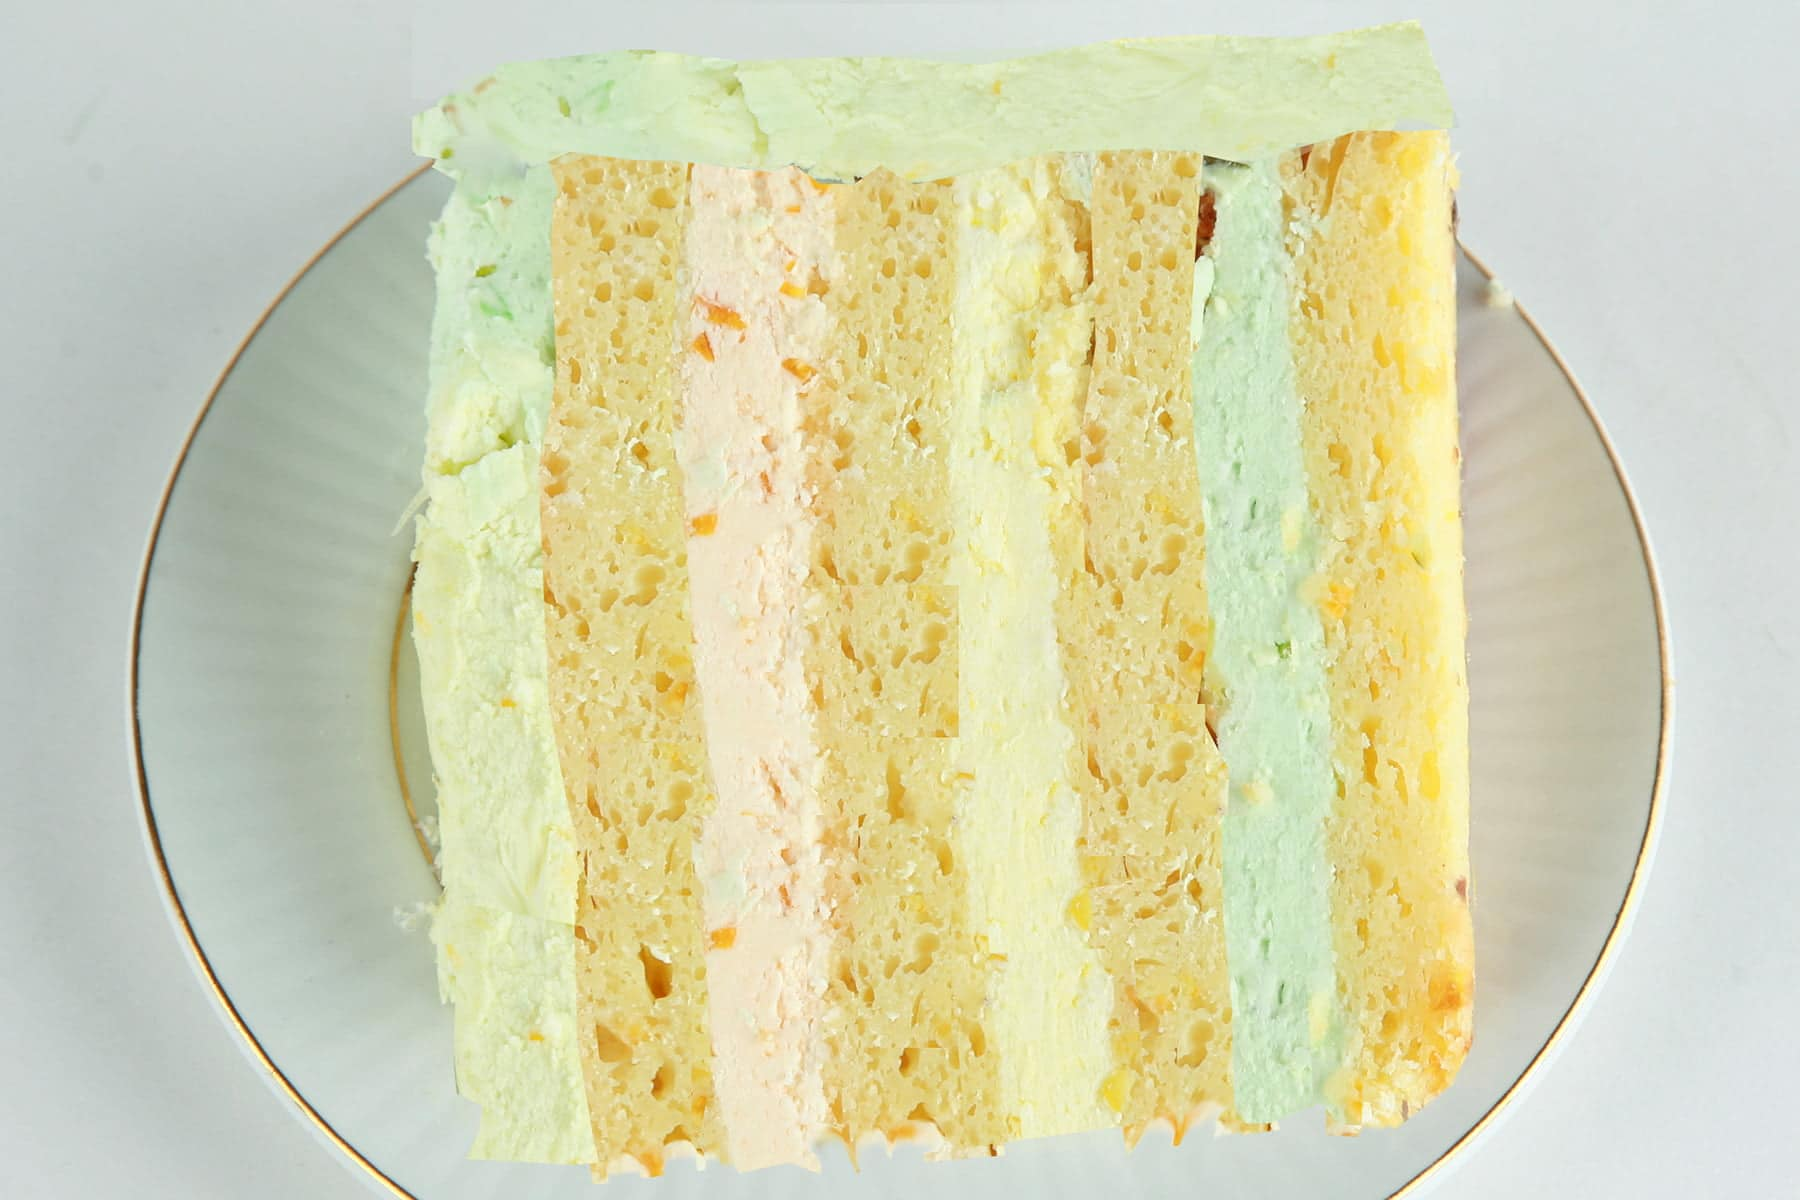 A slice of citrus splendor cake on a plate. 4 layers of a yellow citrus cake, separated by orange, lemon, and lime buttercream layers.